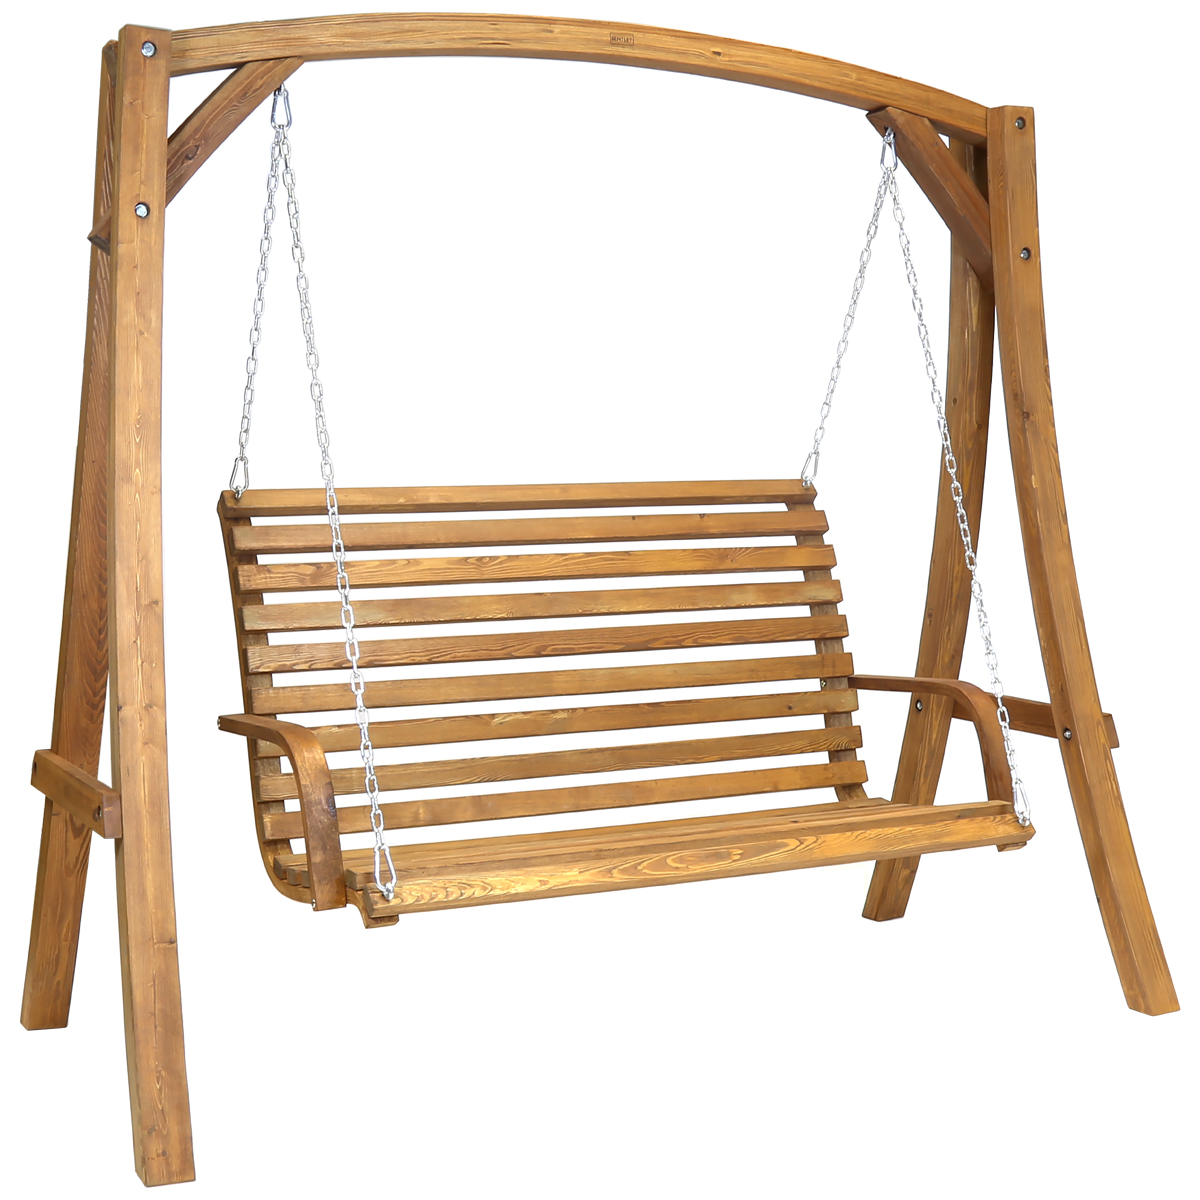 Details About Charles Bentley 2 3 Seater Swing Seat Made Of Wood 19m Weather Proof